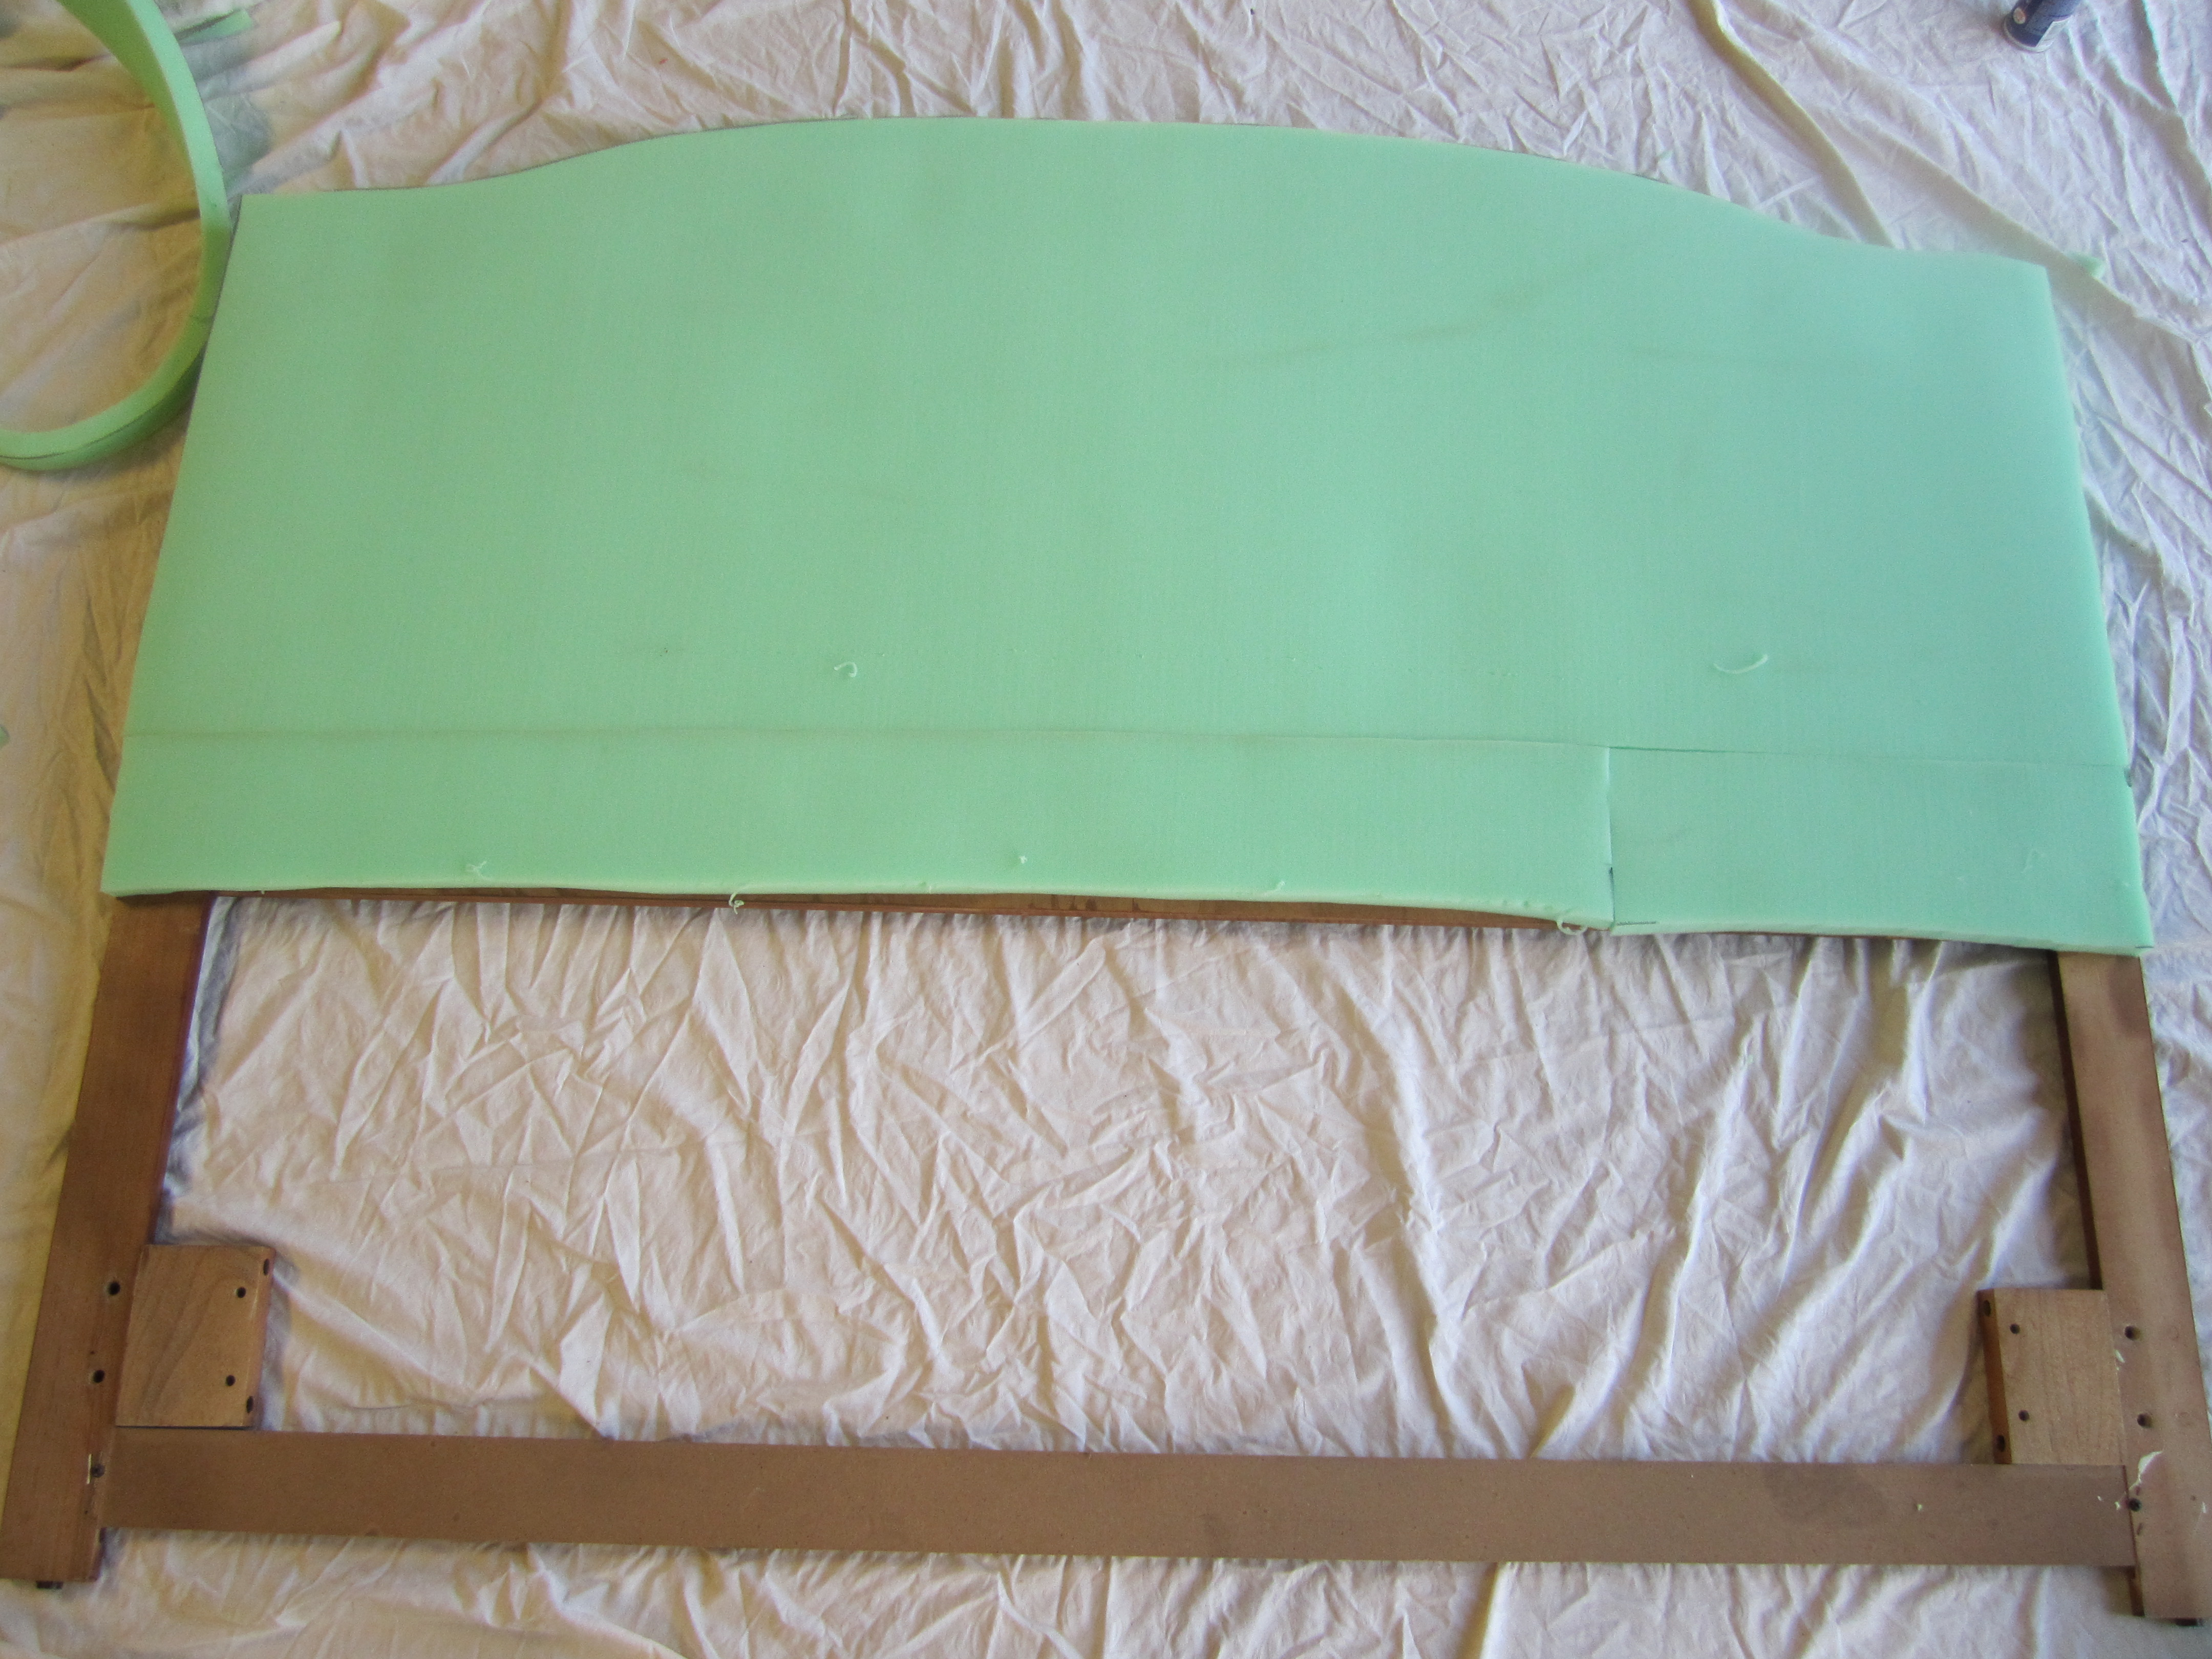 How to cover a headboard - Apply Batting Cut A Large Piece Of The Batting That Will Cover The Entire Headboard Smooth Said Batting Over The Entire Front Of The Headboard